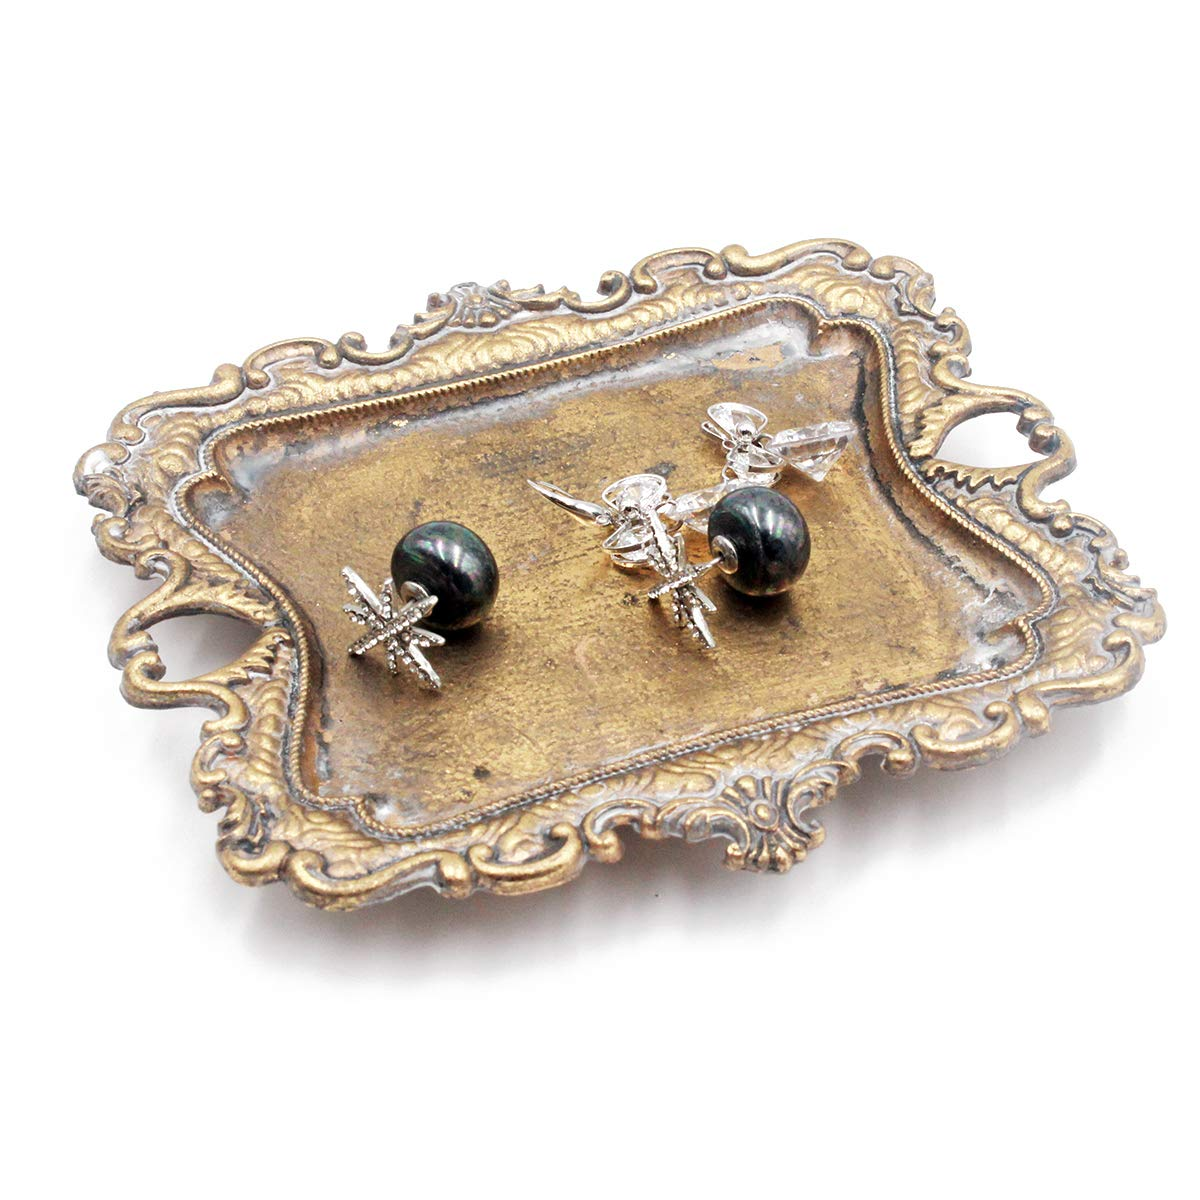 Funly Mee Antique Trinket Tray Vintage Gold Jewelry Dish Ring Holder